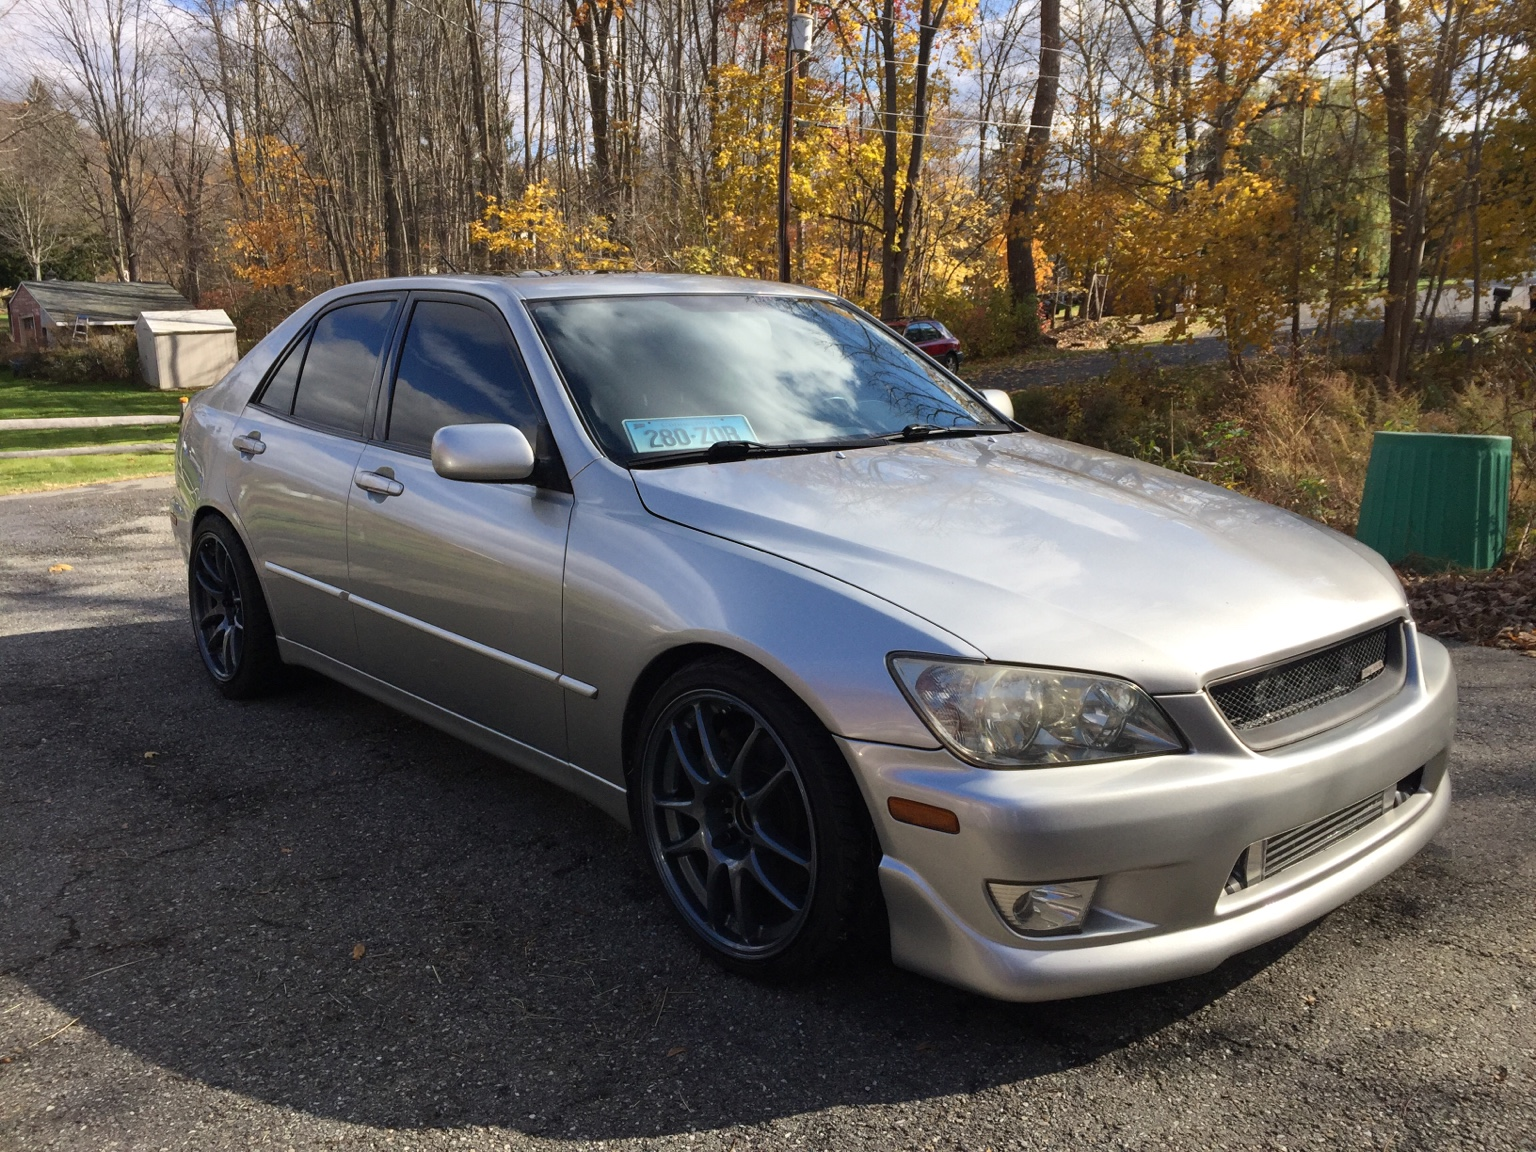 FS/FT: (For Sale or Trade) CT: 2002 Lexus IS300 NA-T, 95k